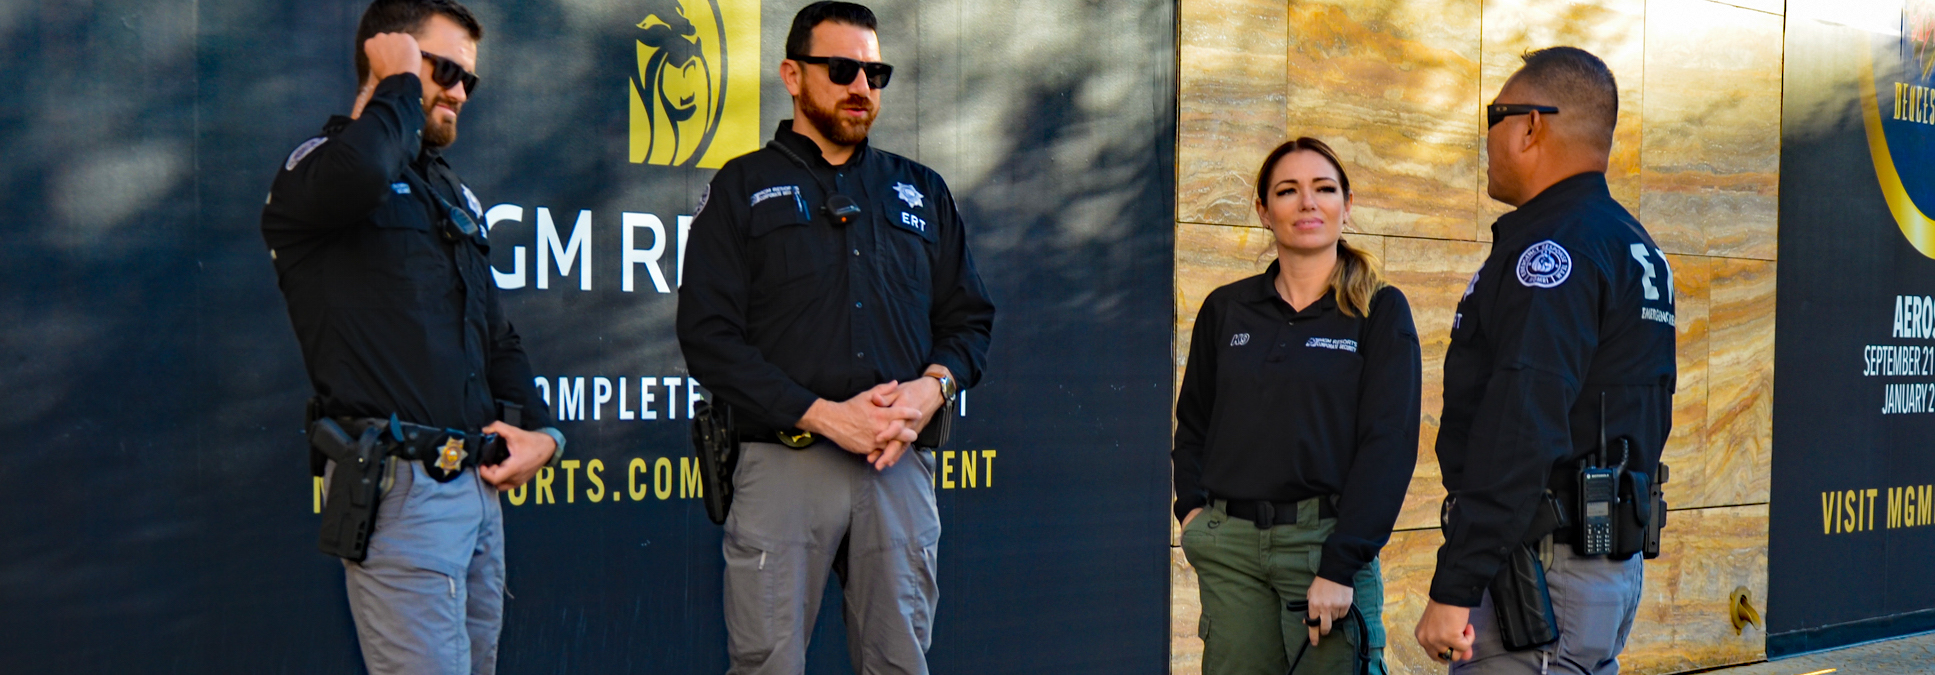 Las_Vegas_MGM_Resort_Emergency_Response_Team_ERT_K9